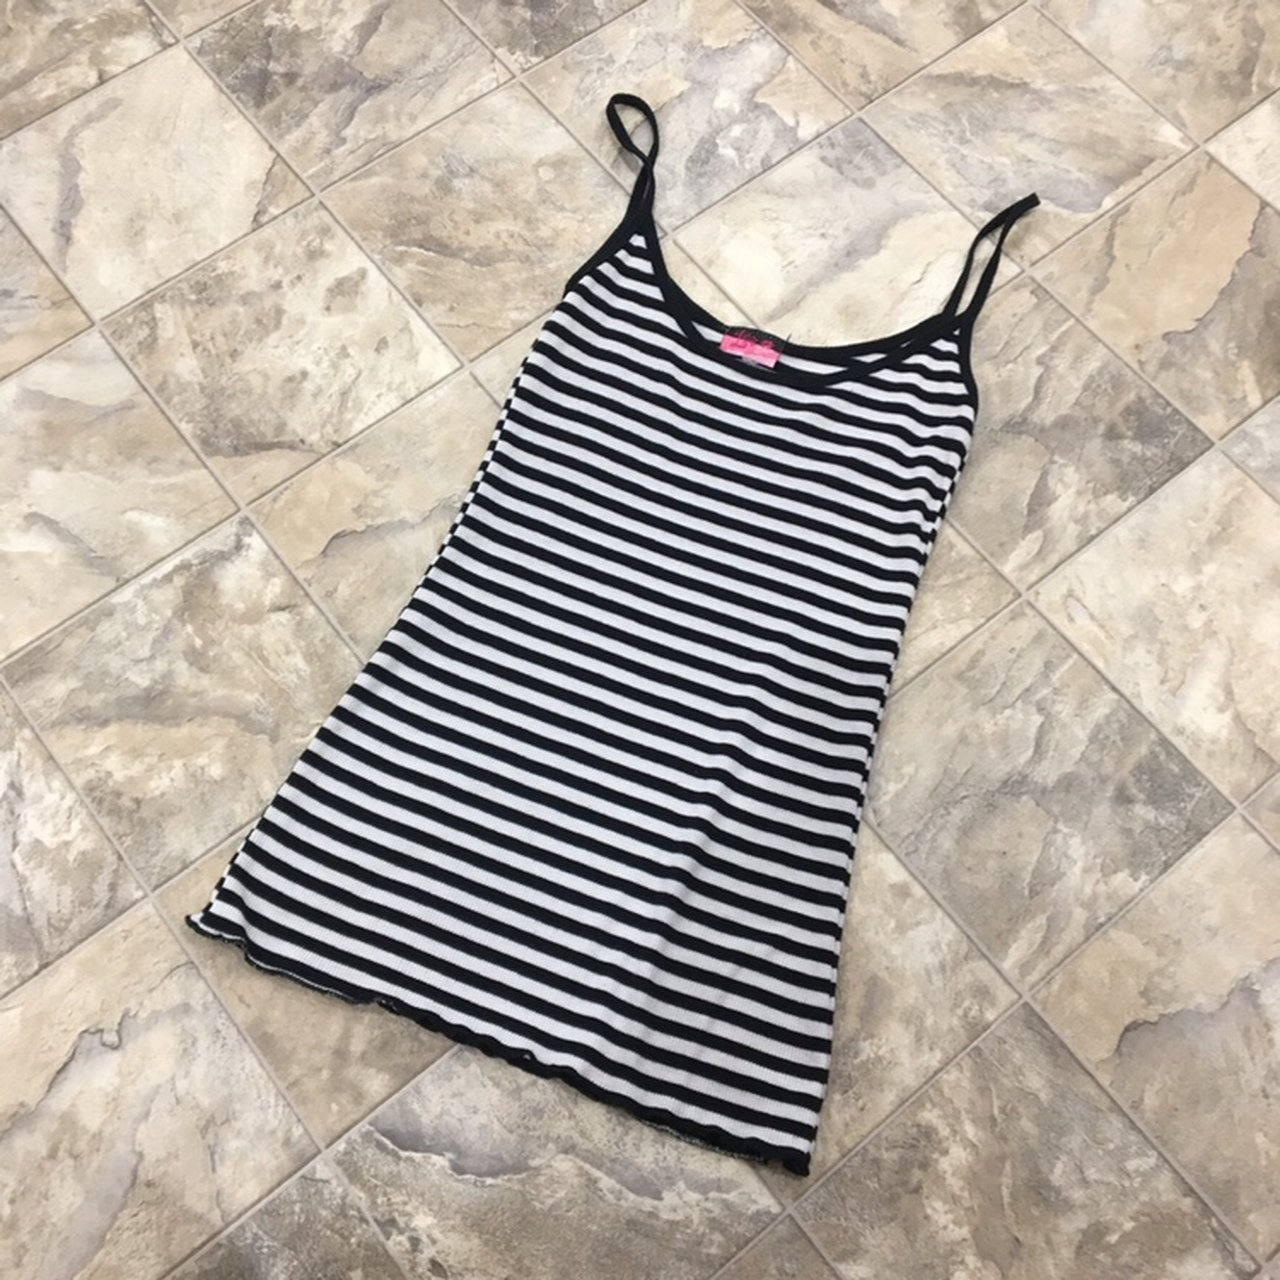 801515e0a2fc79 More things you might like. LANE BRYANT black tank top